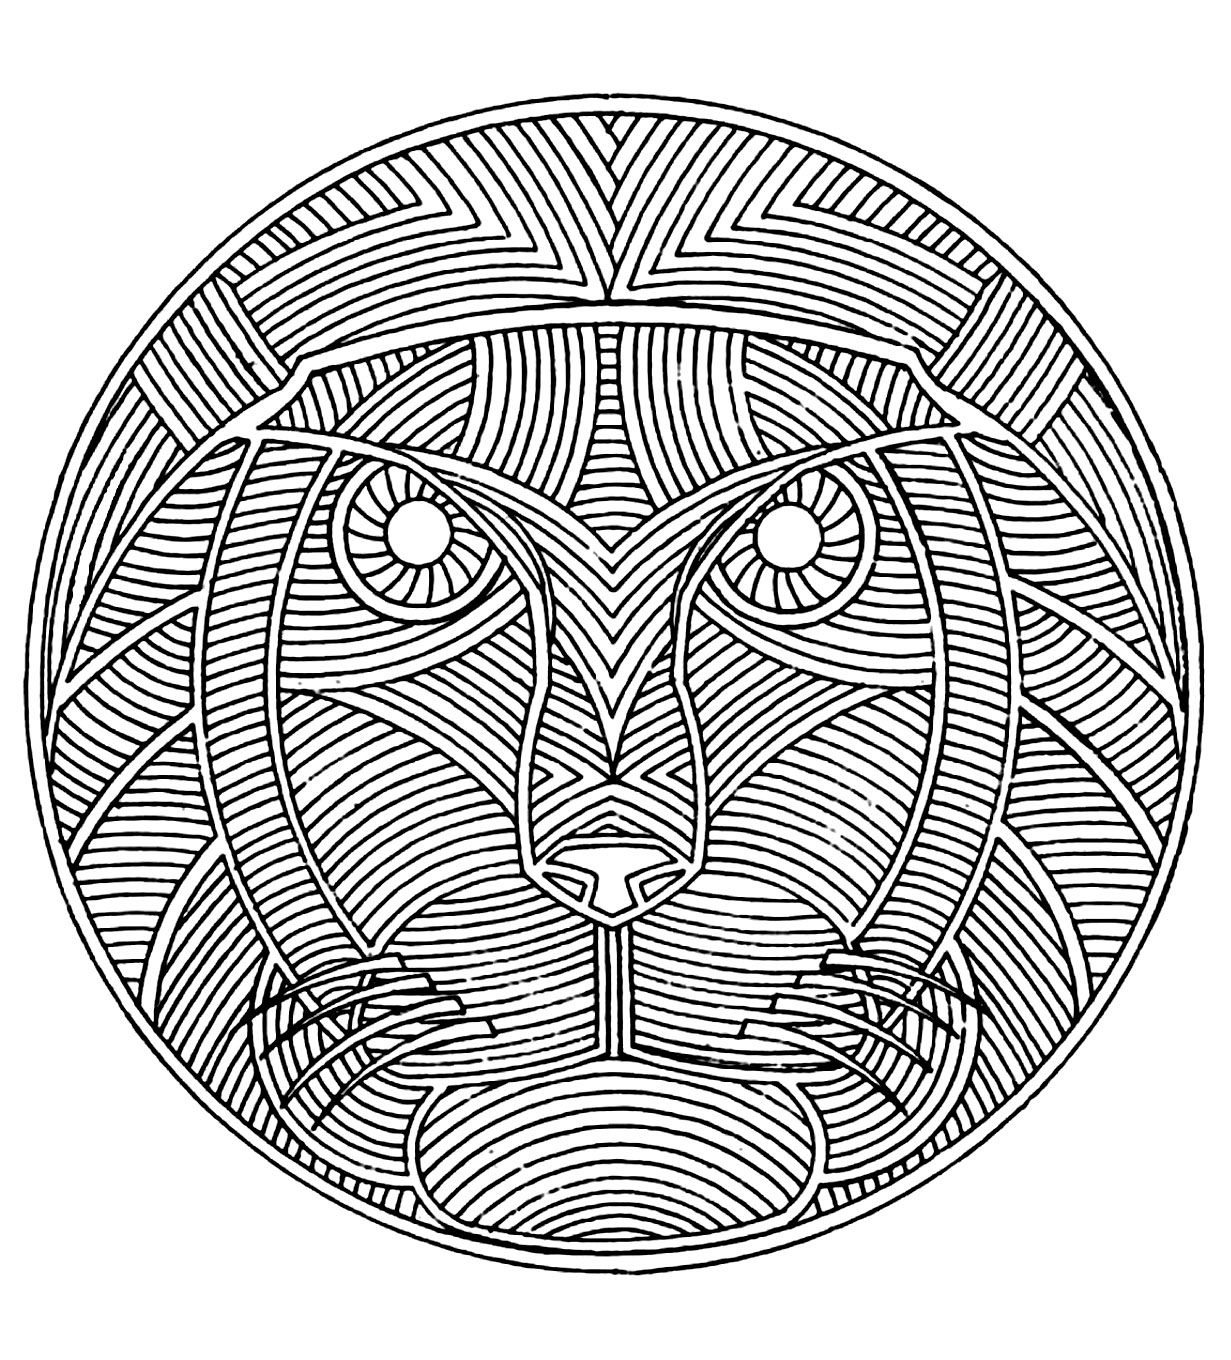 Discover Our African Designs Adult Coloring Pages Do You Know That This Continent Covers 20 Of The Earths Total Land Area And 15